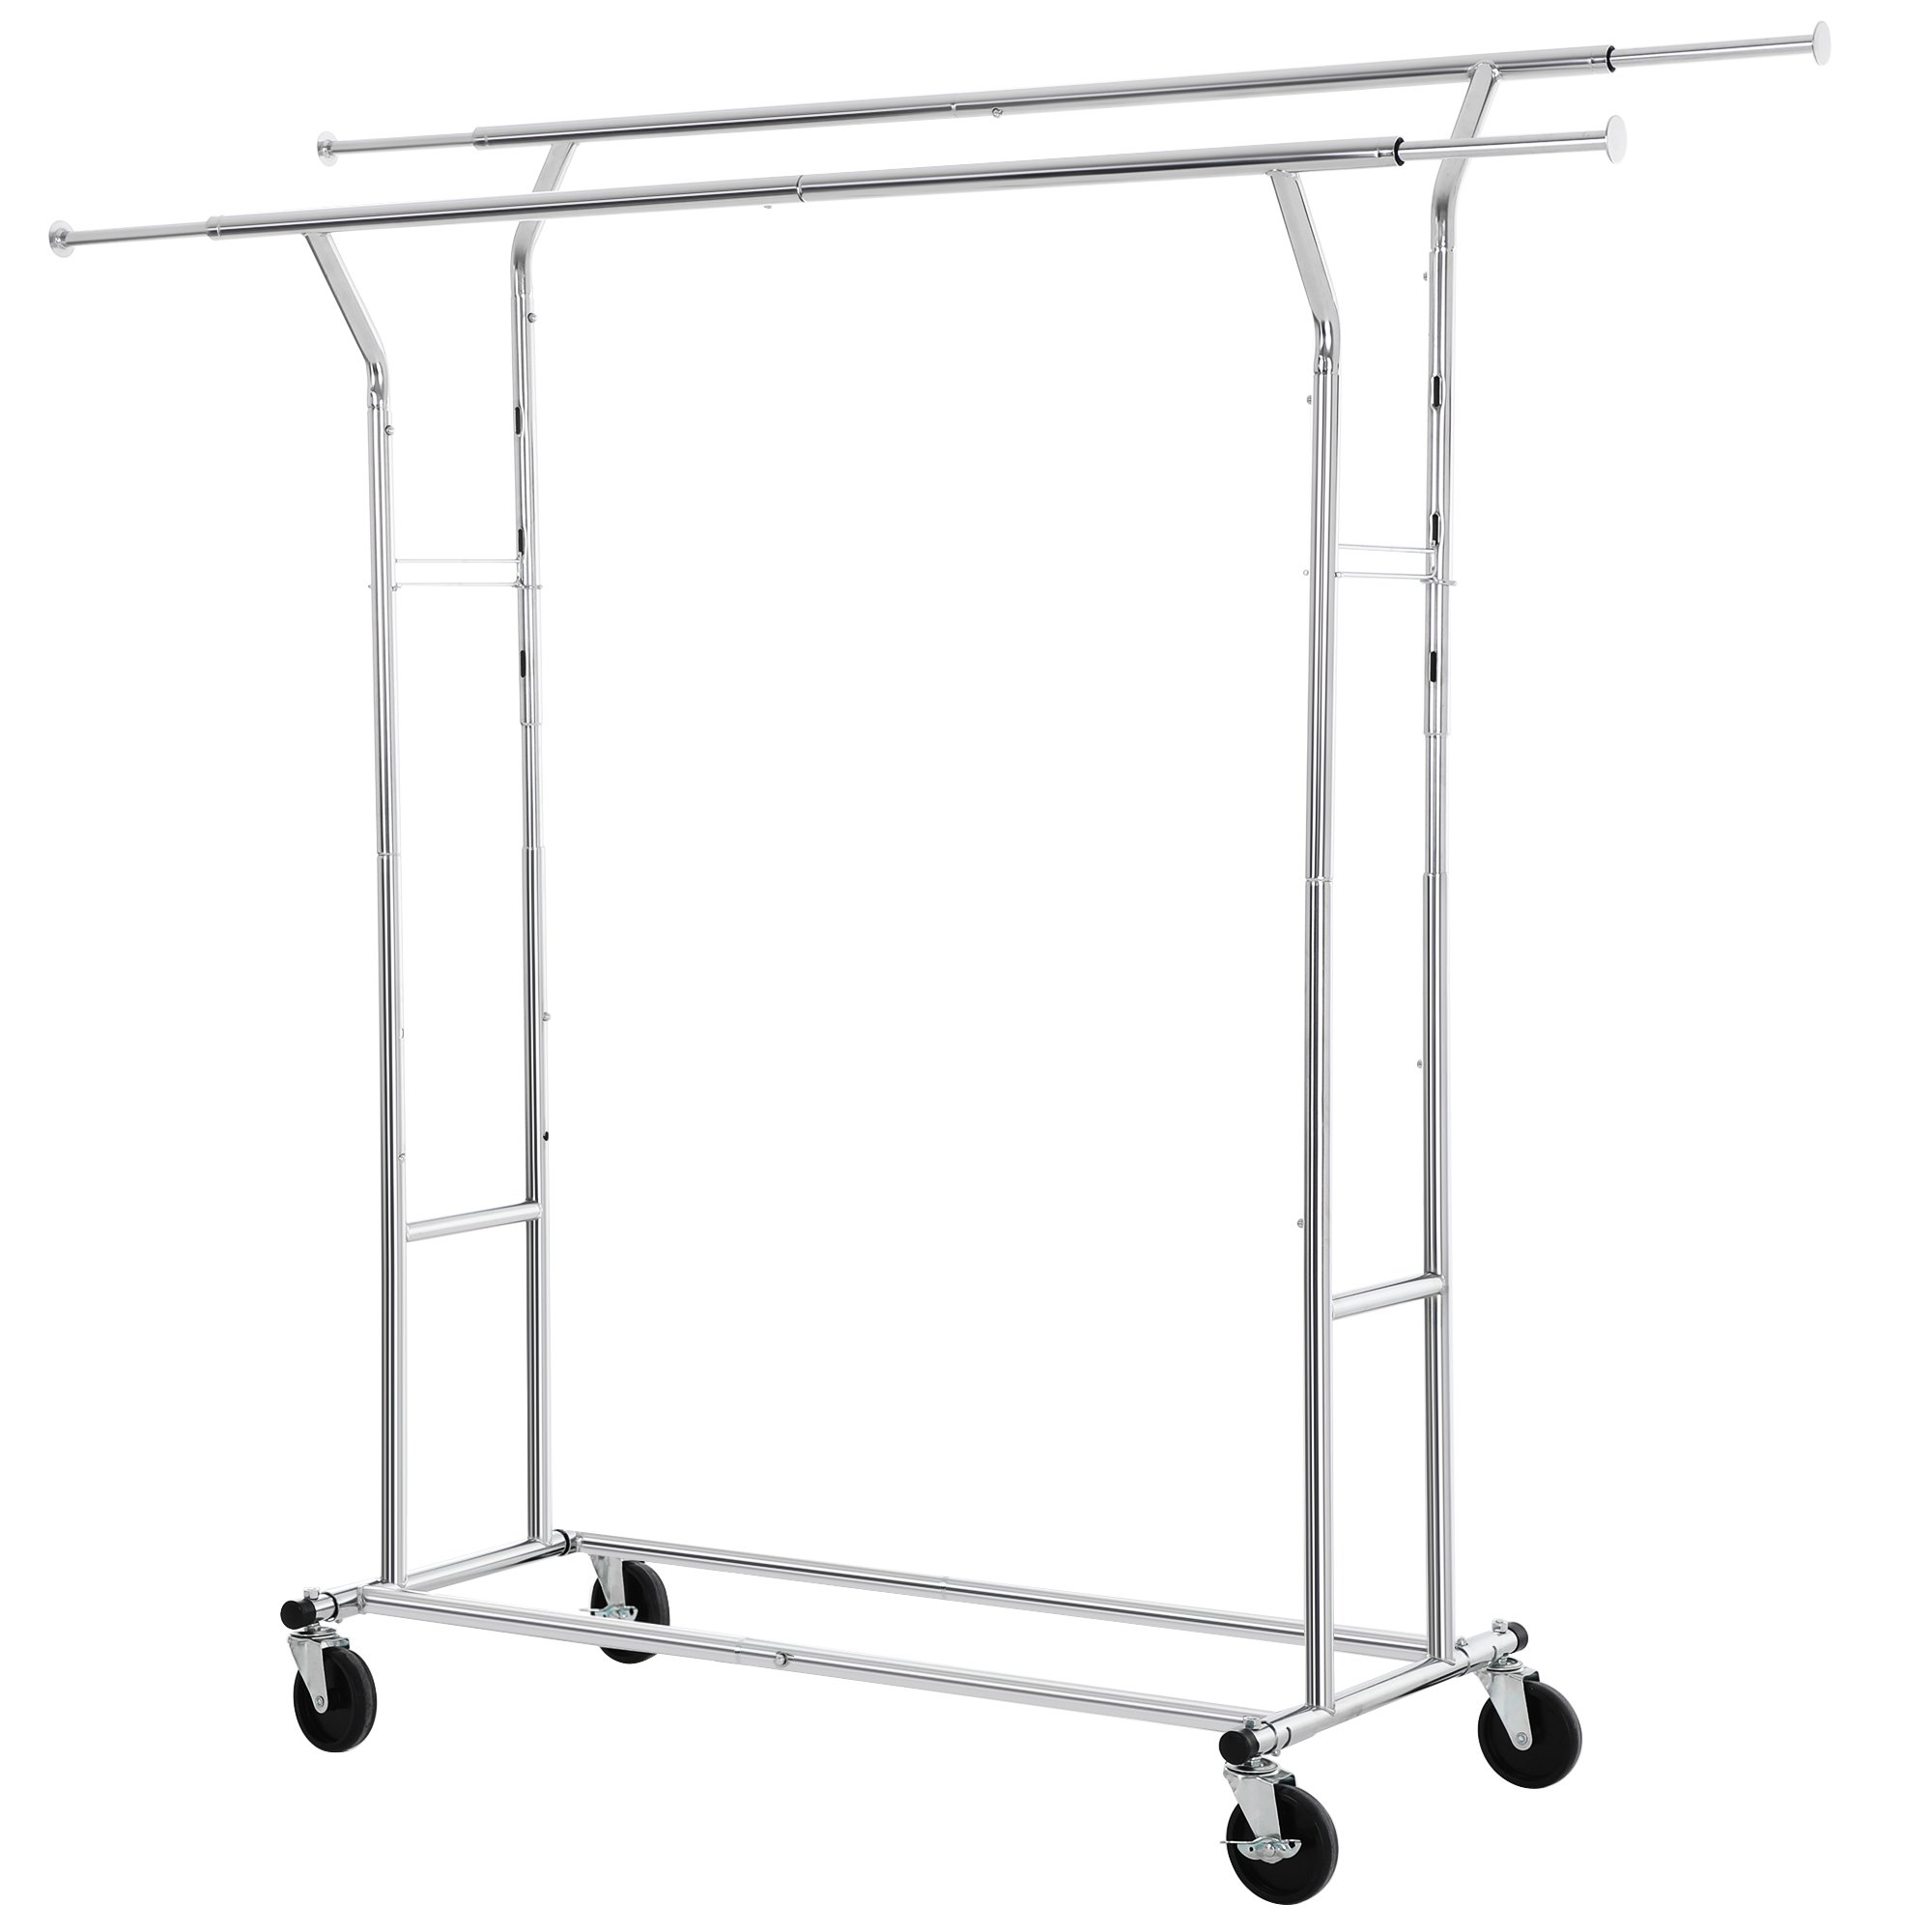 Songmics commercial grade double rail garment clothing rack for boutiques rolling hanging rack for clothes chrome